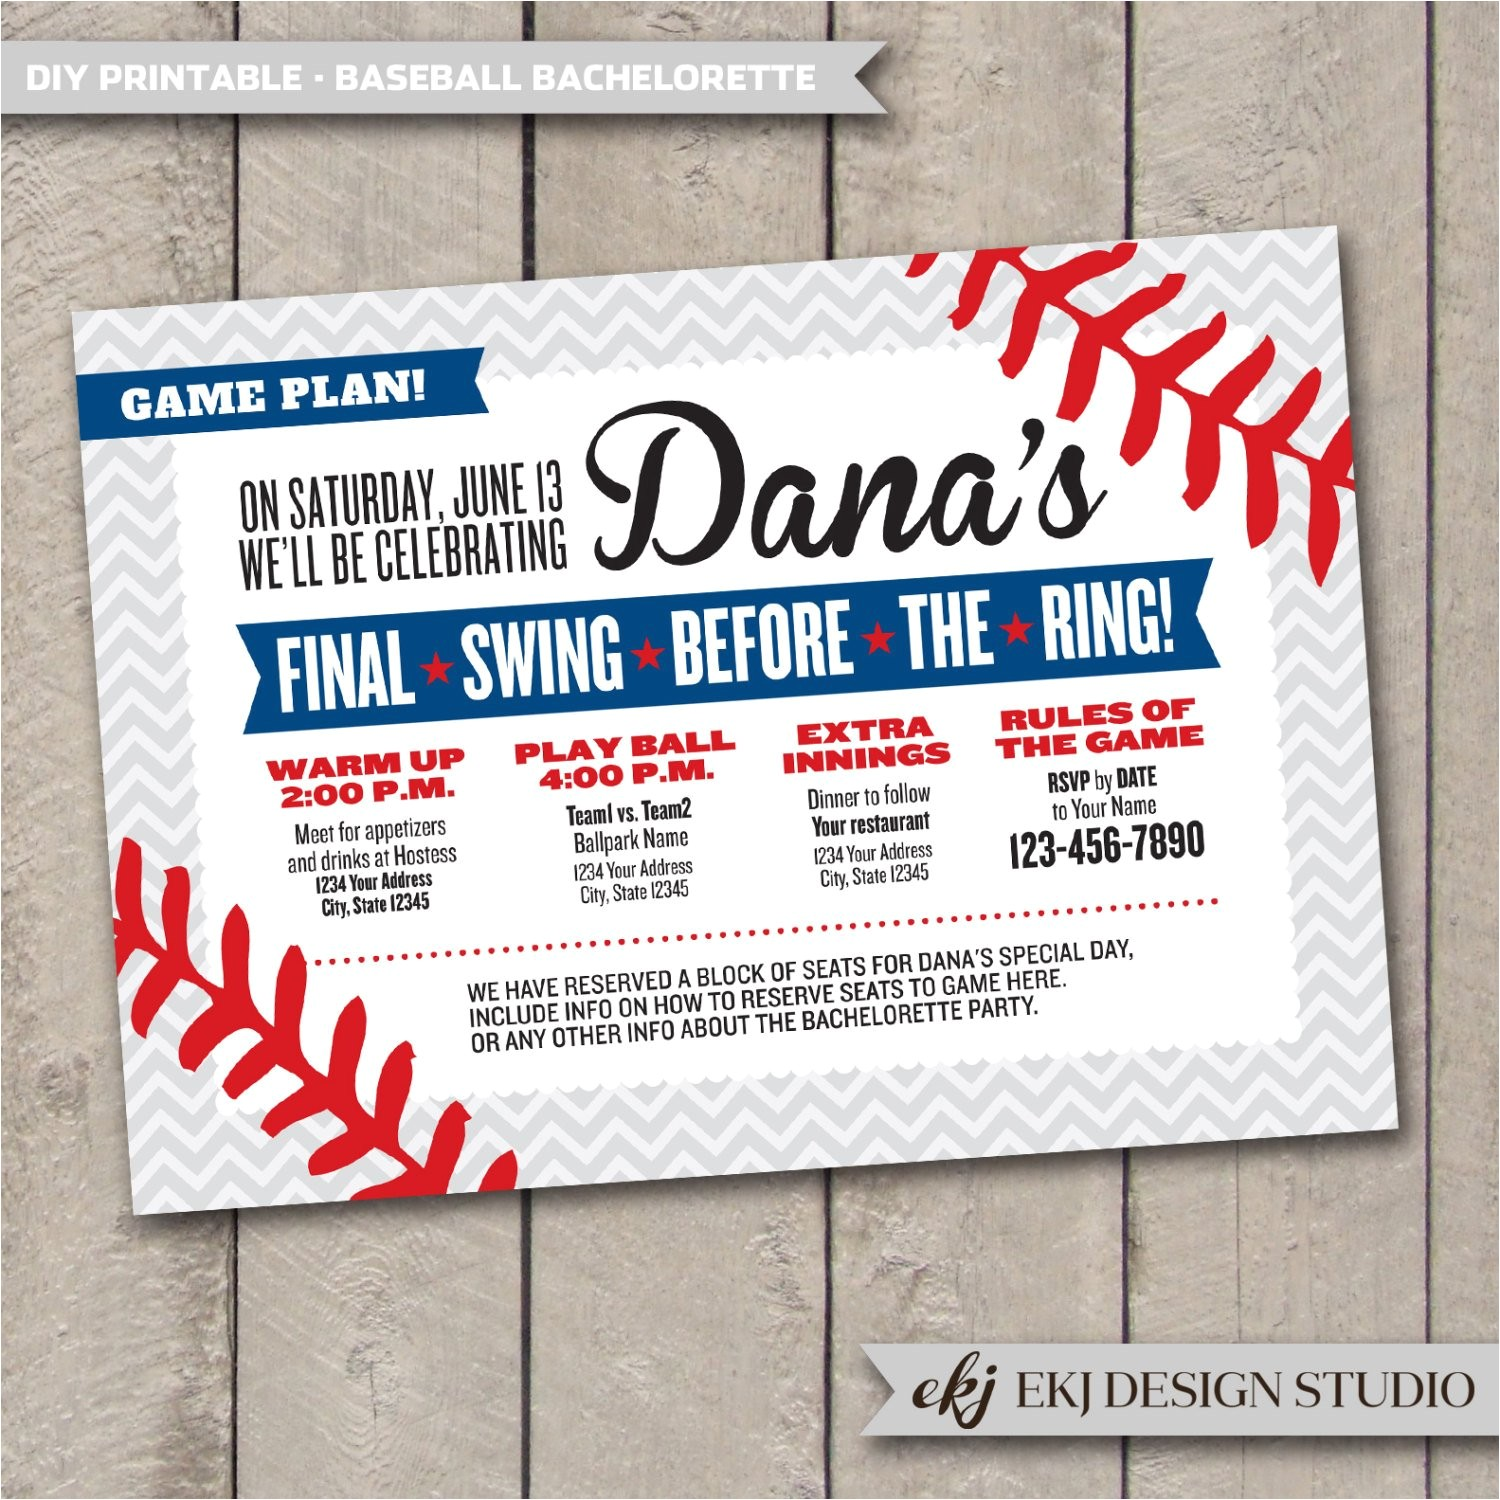 diy printable baseball bachelorette